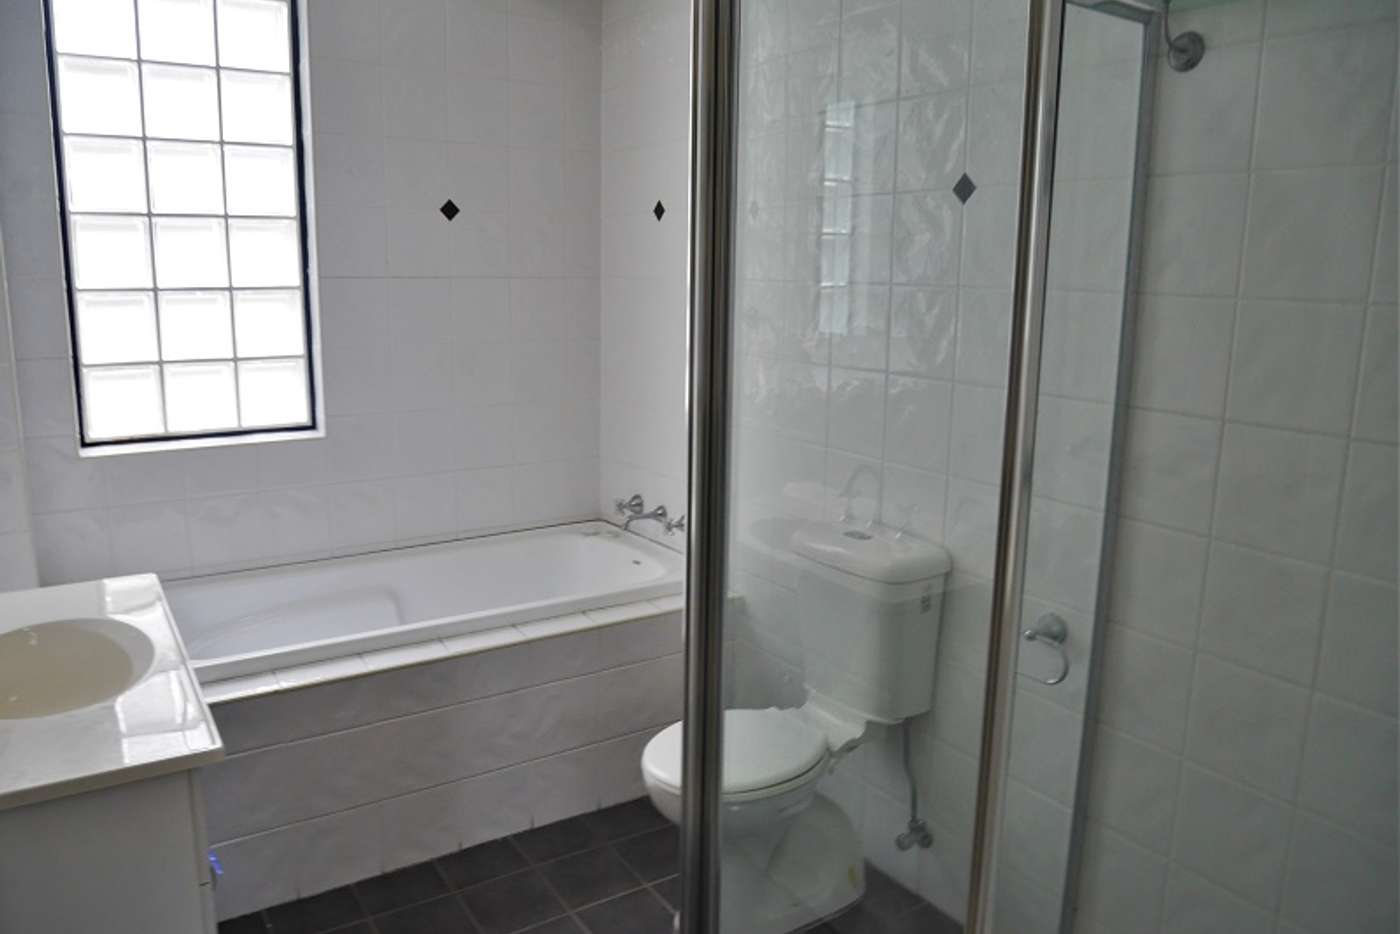 Sixth view of Homely apartment listing, 5/72 Marsden Street, Parramatta NSW 2150